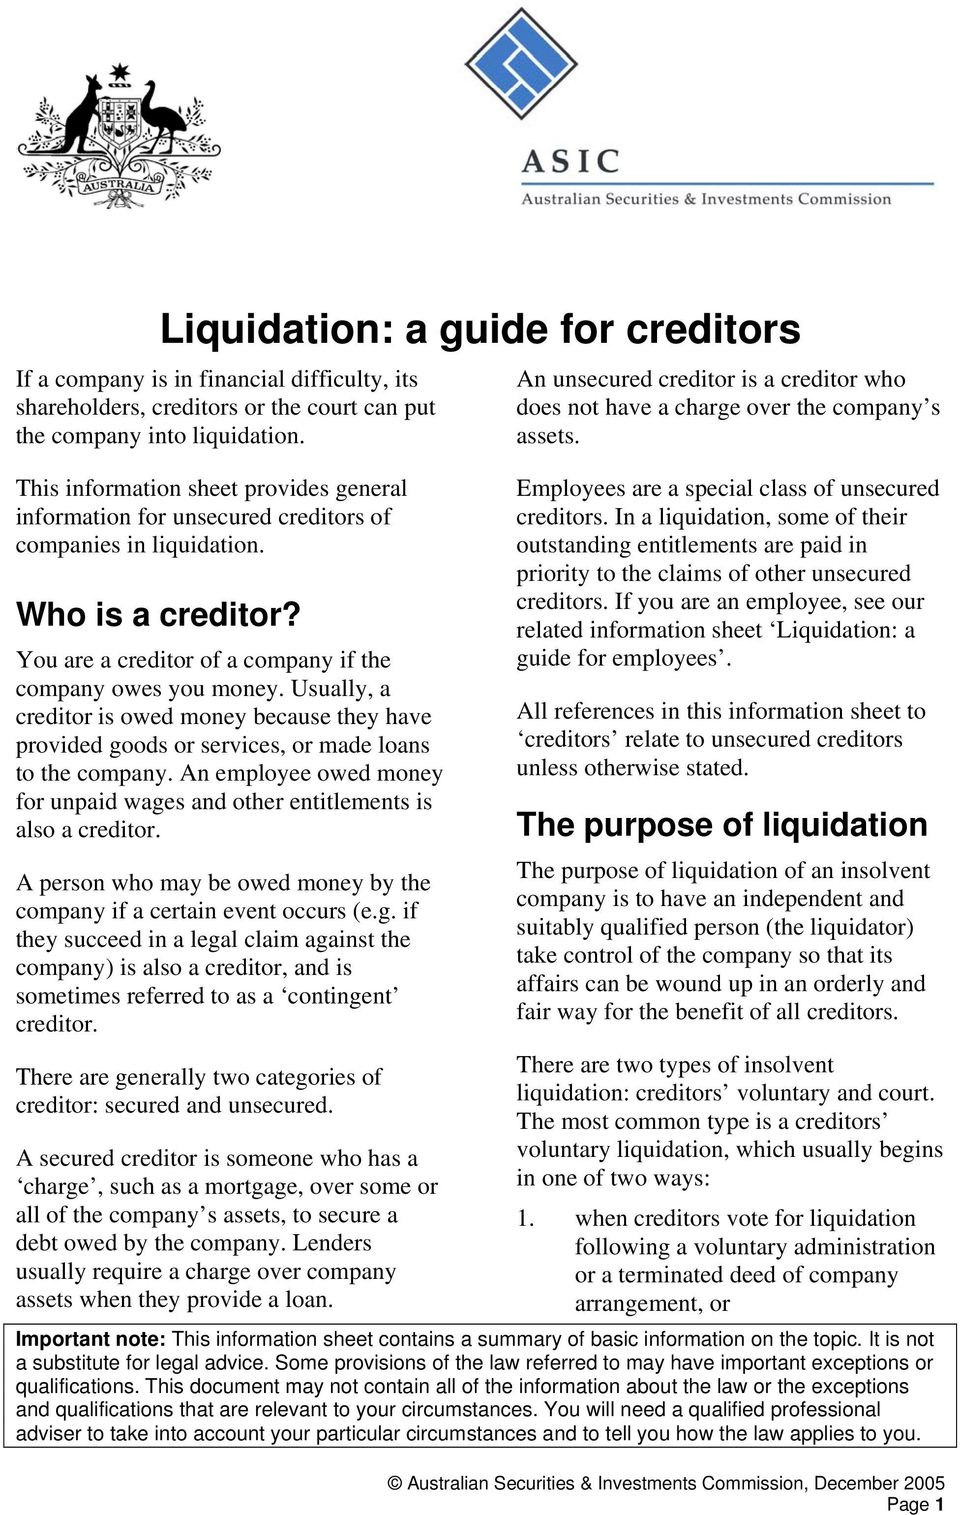 Usually, a creditor is owed money because they have provided goods or services, or made loans to the company. An employee owed money for unpaid wages and other entitlements is also a creditor.